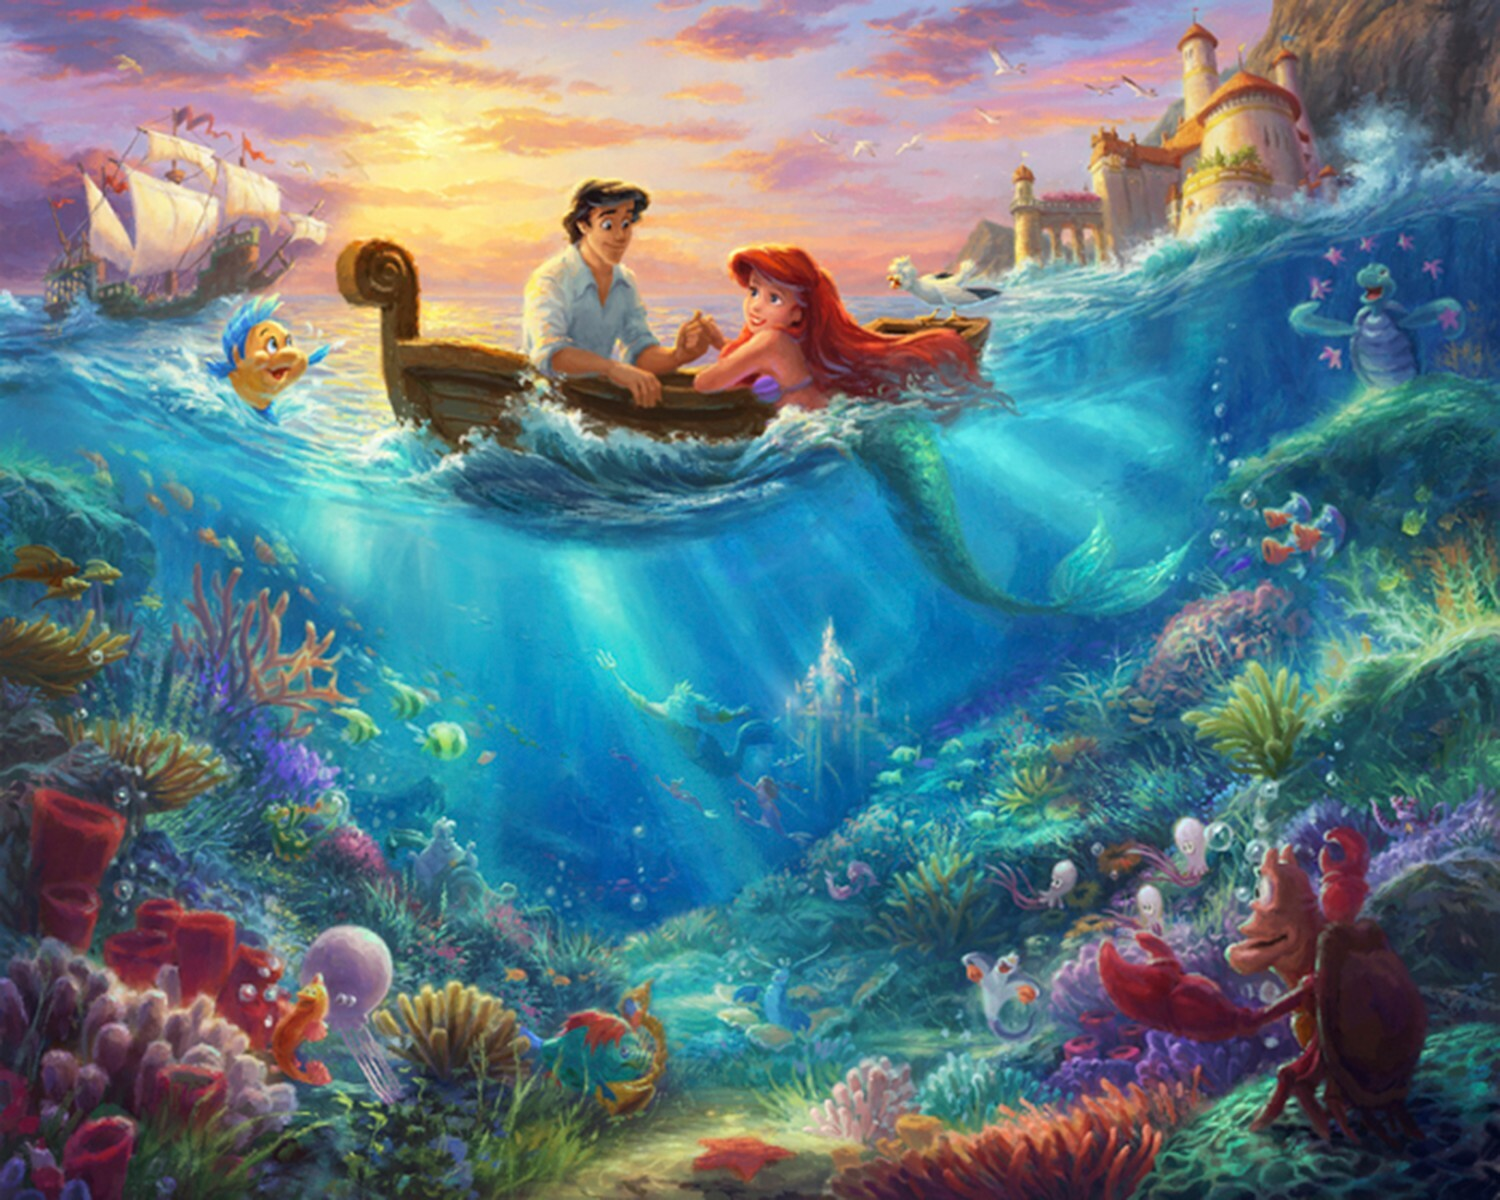 Disney Dreams Panel - Little Mermaid 57267